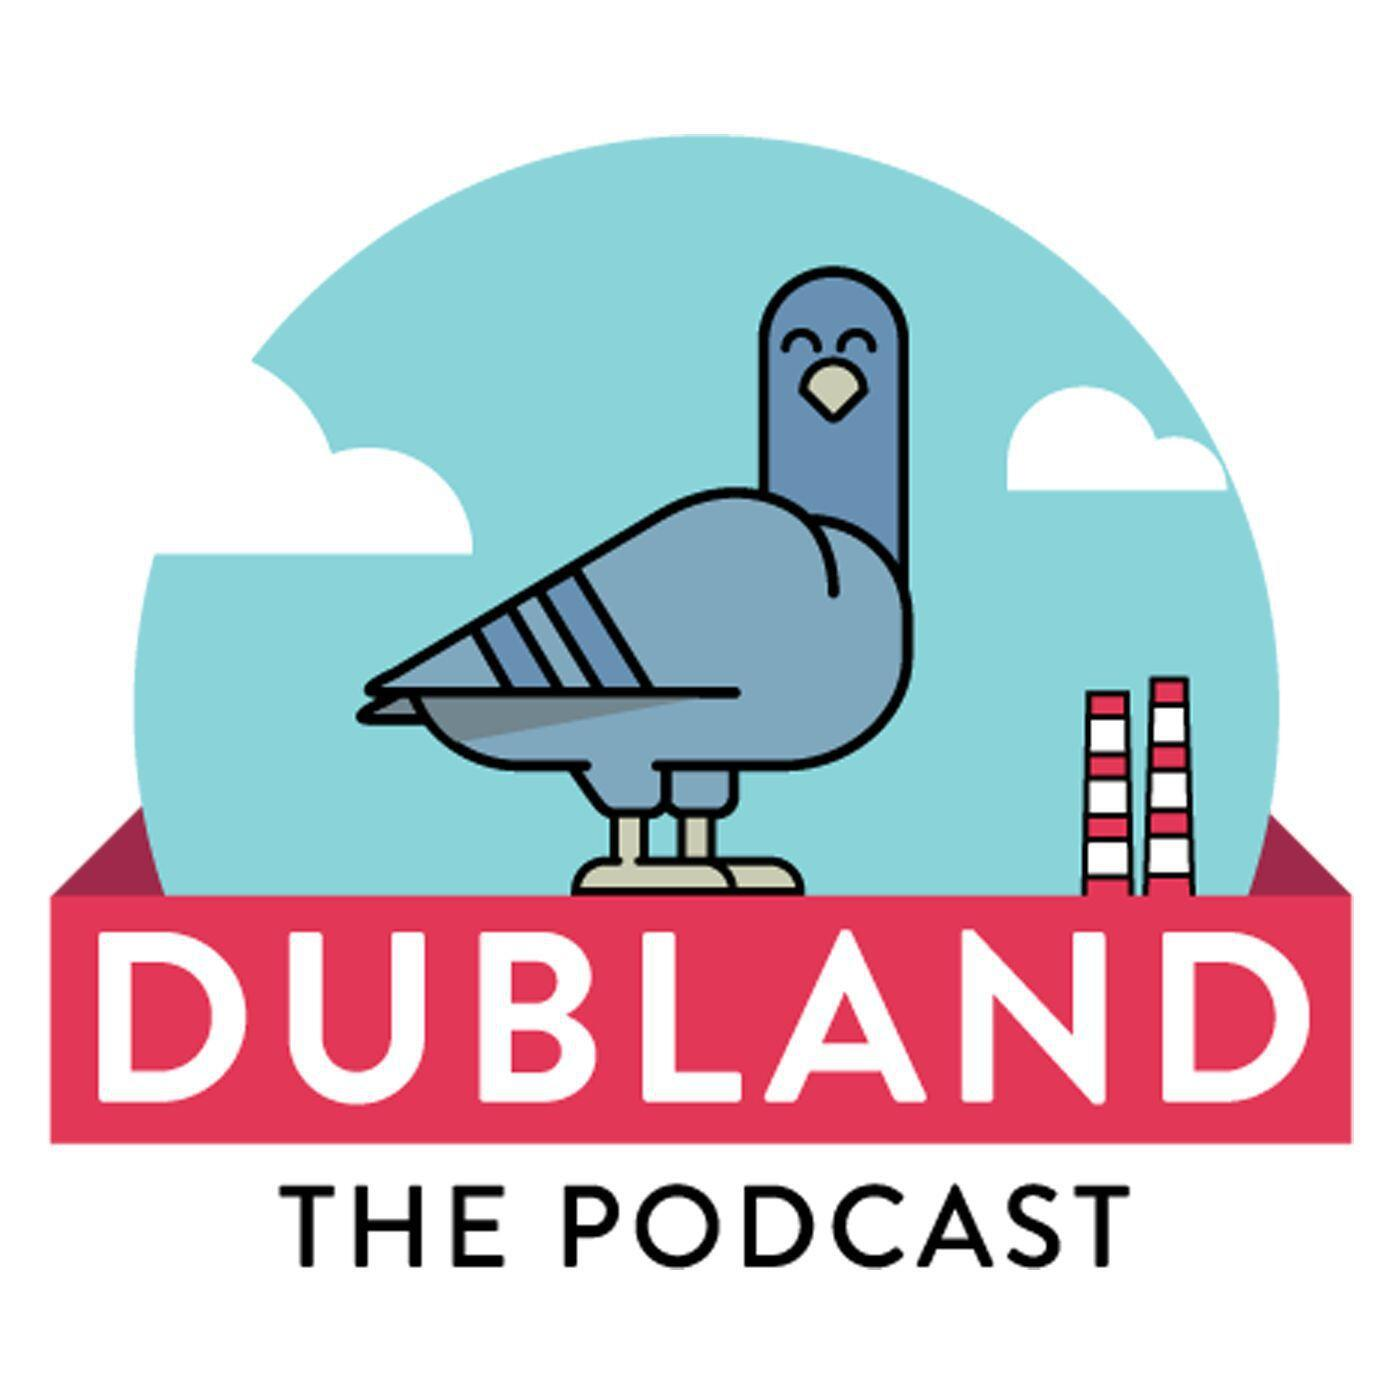 DUBLAND The Podcast EPISODE EIGHT